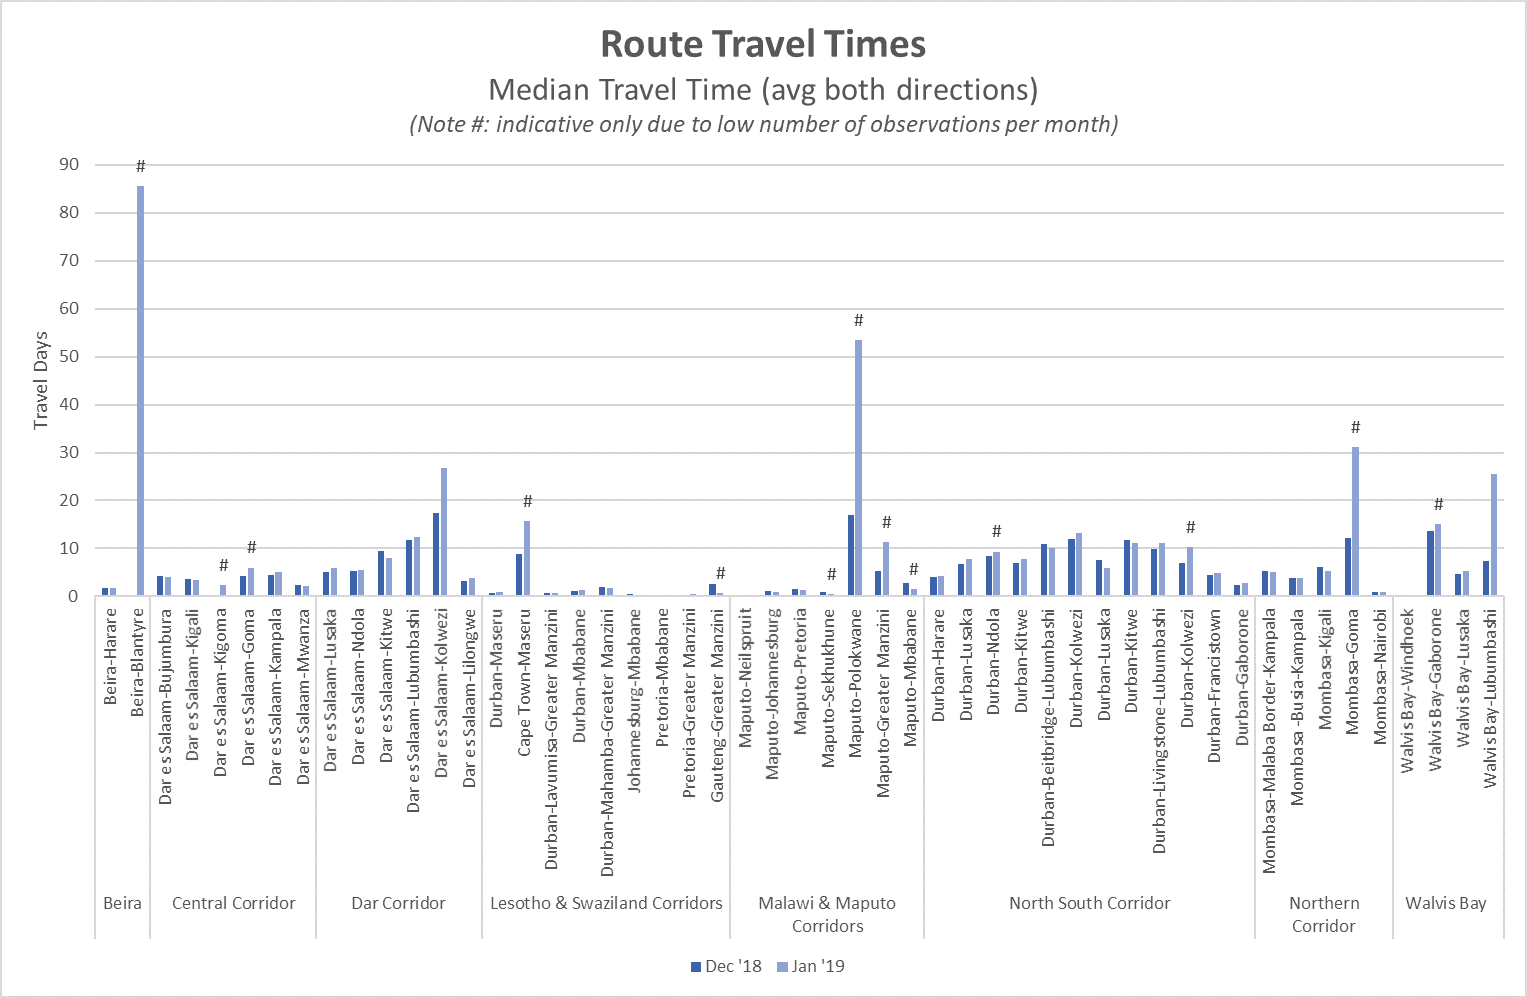 Route Travel Times